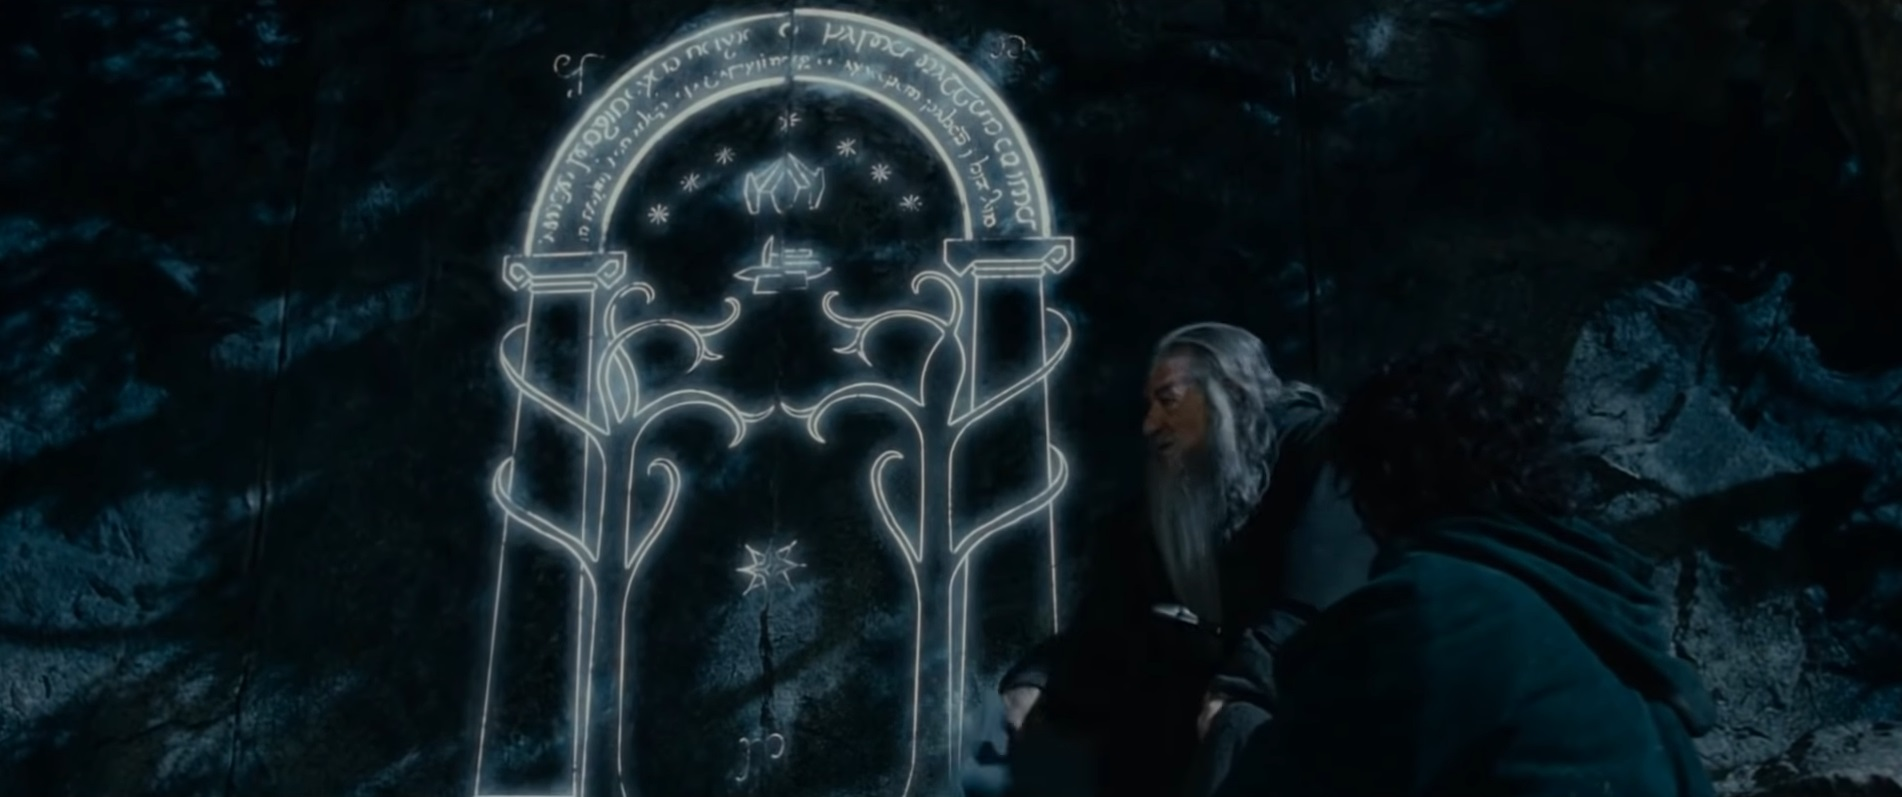 File:Doors of Durin.jpeg